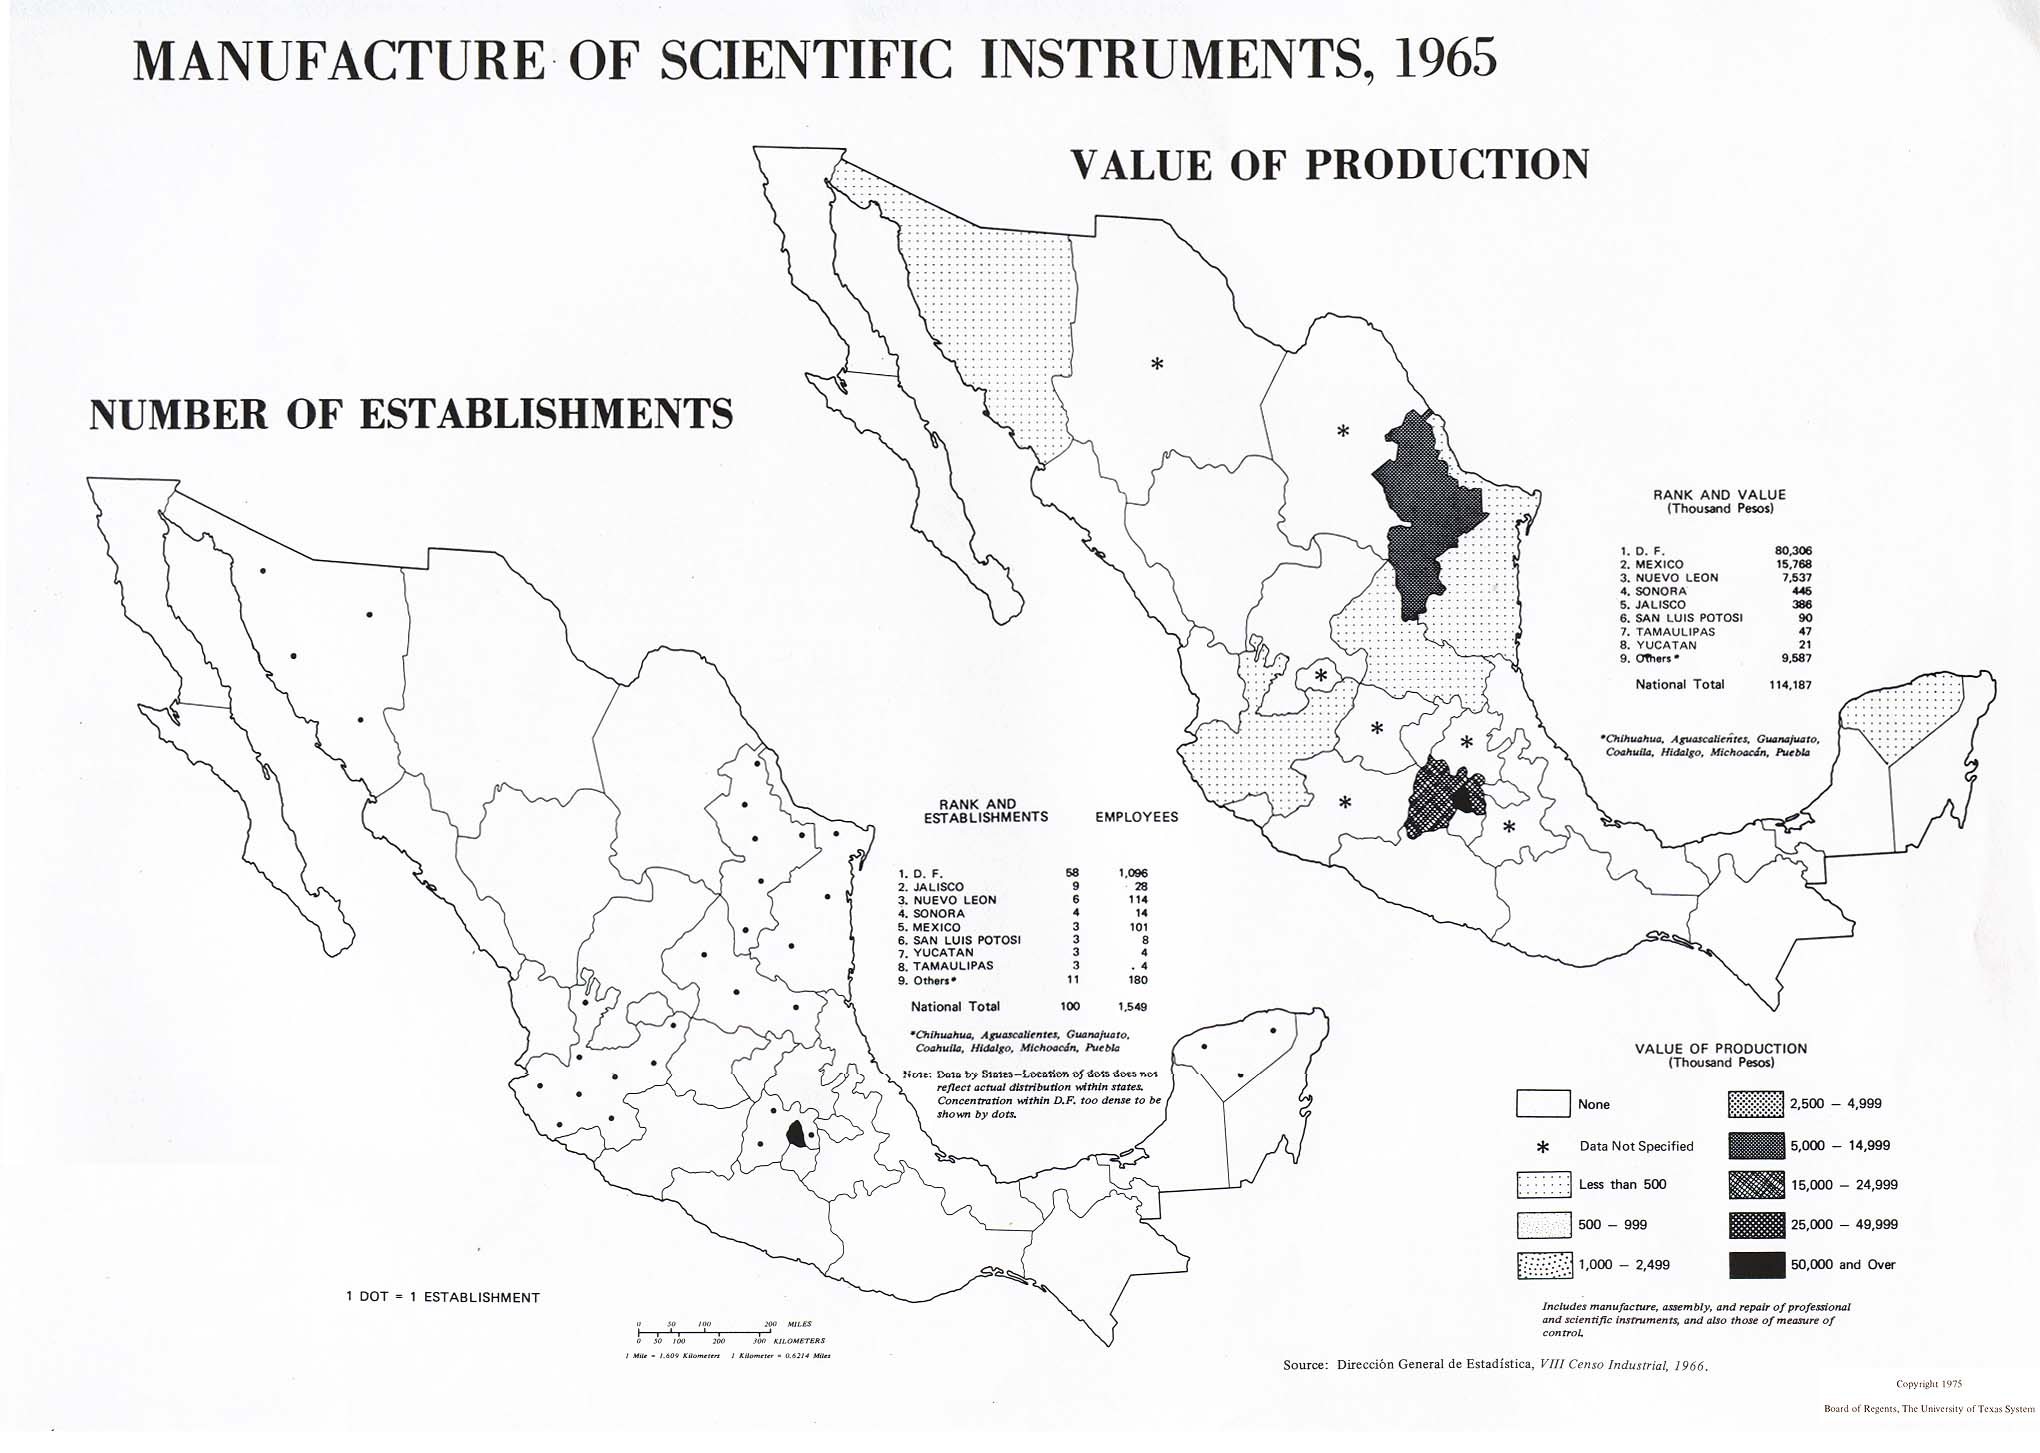 Manufacture of Scientific Instruments in Mexico 1965